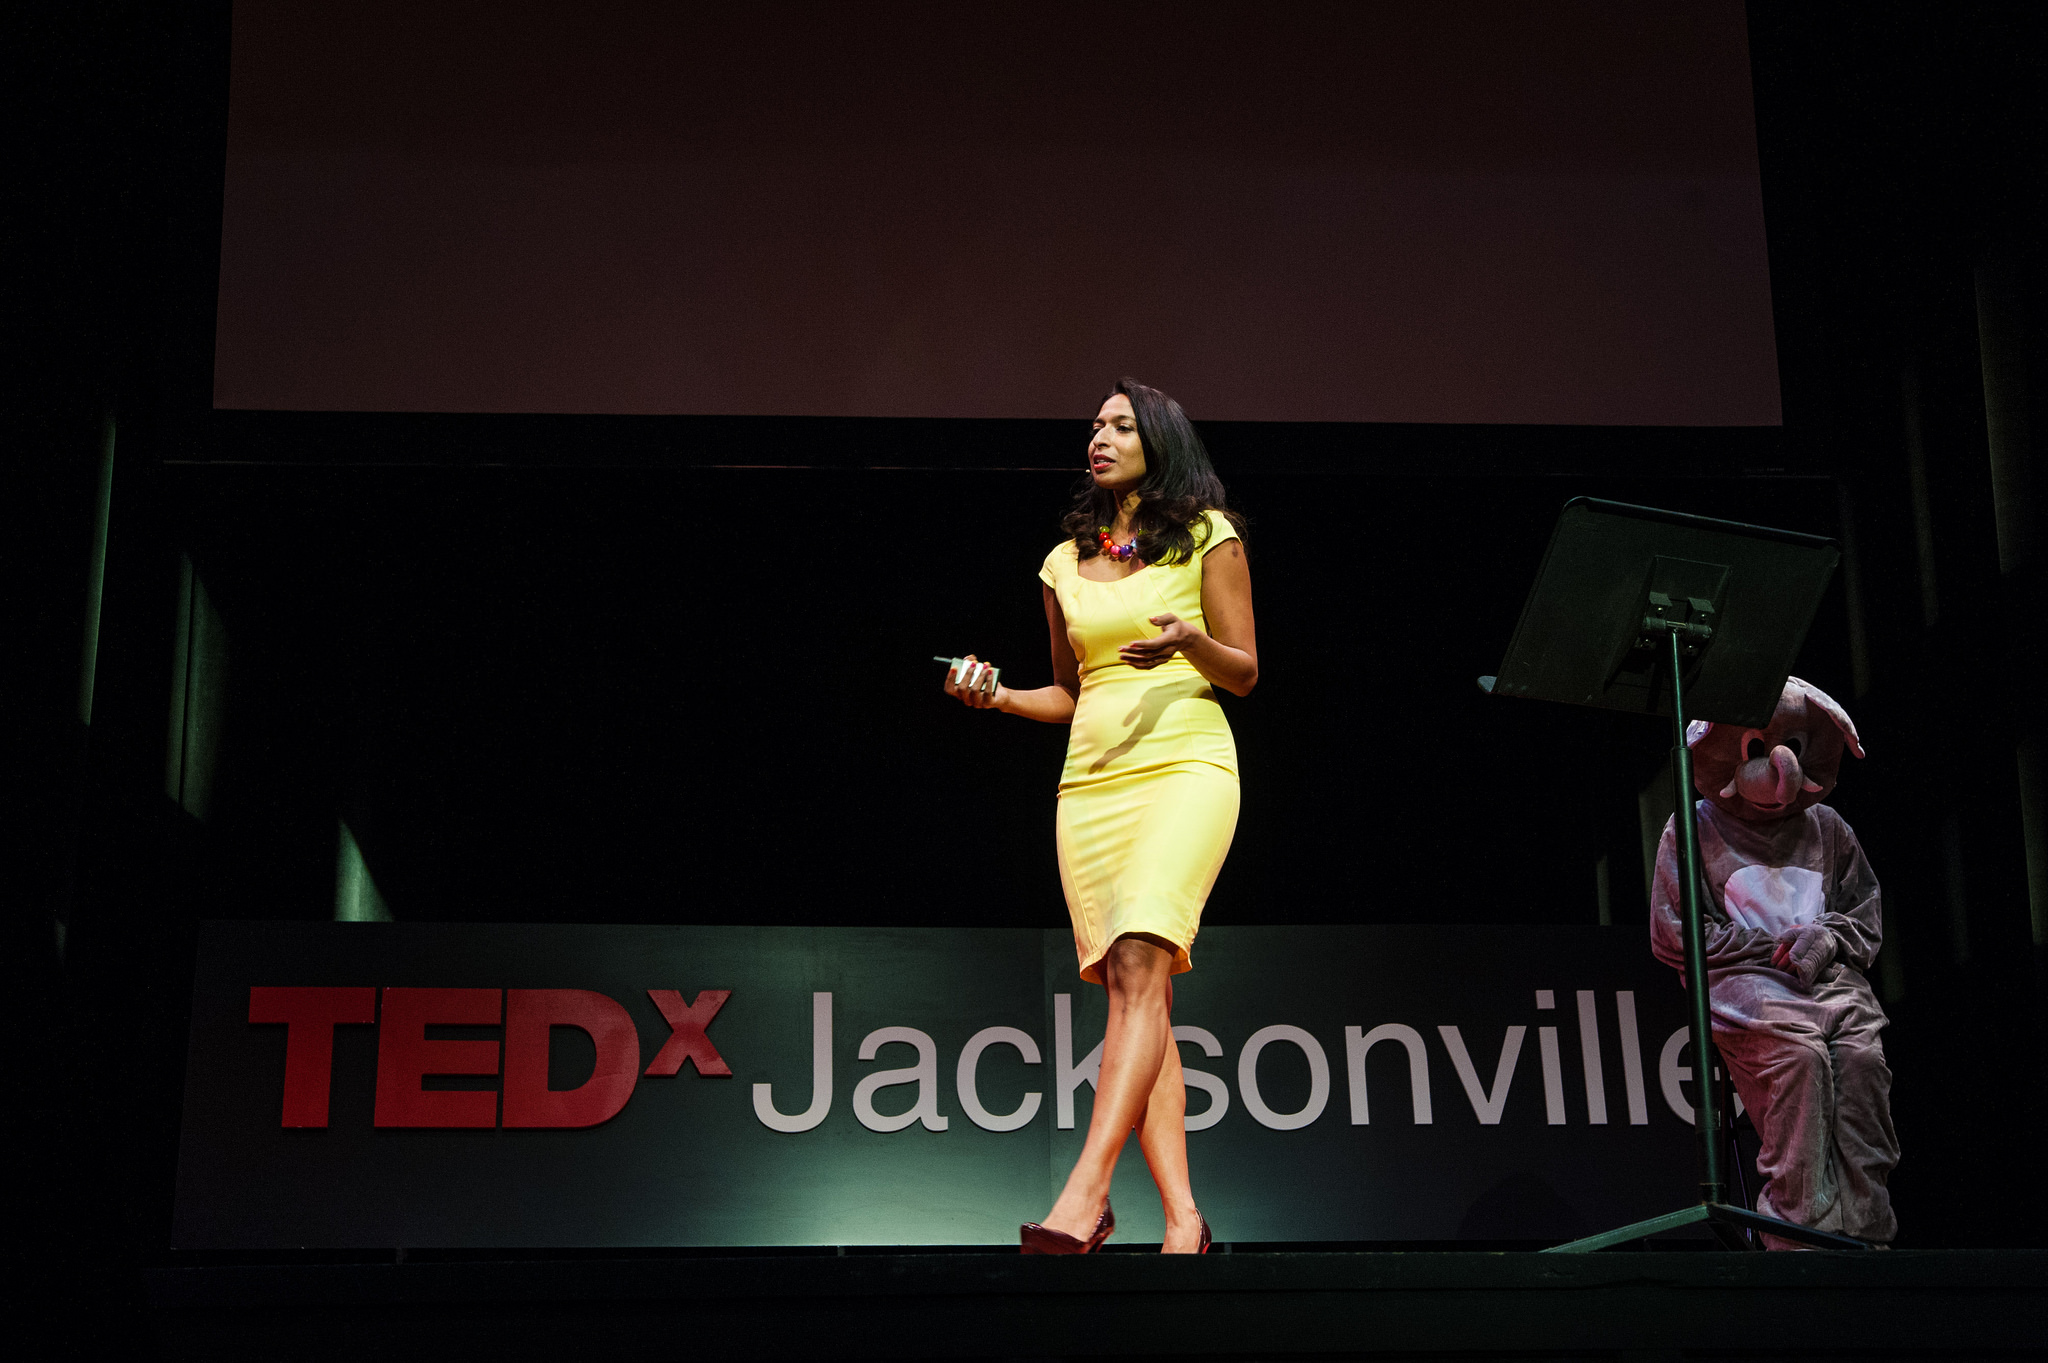 TEDx Speaker & Consultant - She is a highly sought after speaker internationally and has provided consultancy to documentaries, ABC/NBC affiliates, AMC TV, & Fortune 500 companies.